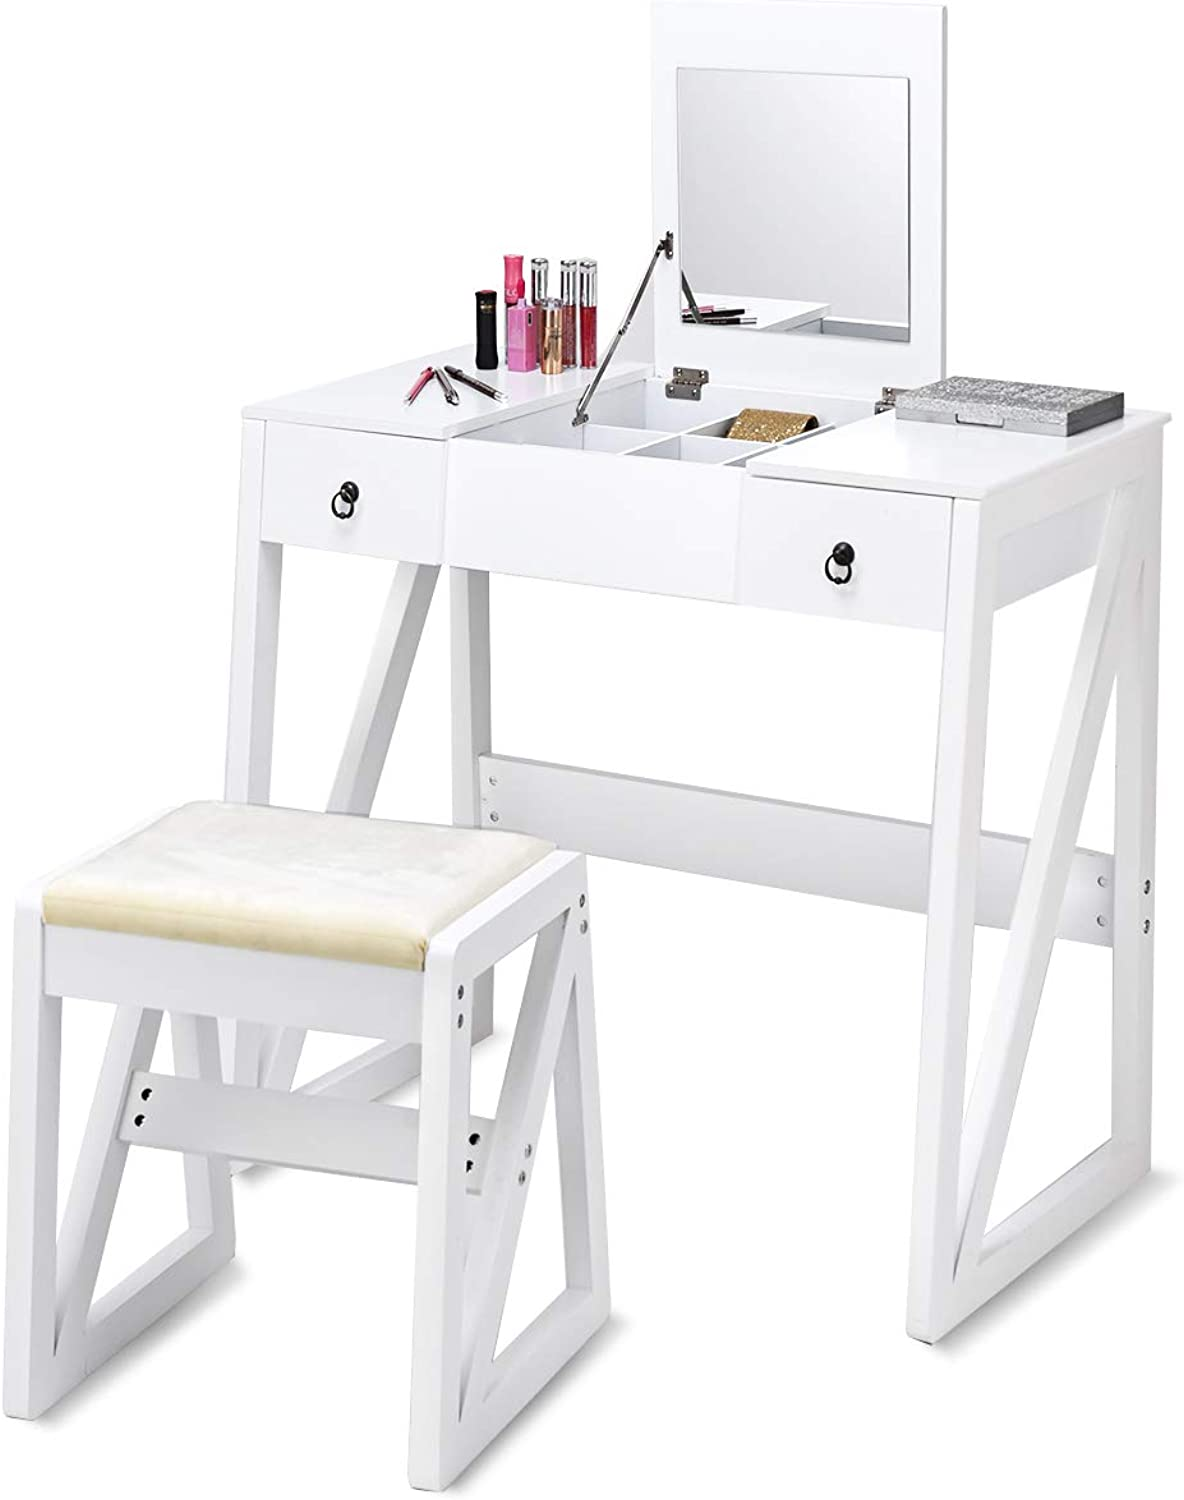 CASART Vanity Dressing Table Set with Stool and Mirror, Foldable Top Mirrored for Makeup Organizers, Dual Modern Writing Desks, Contemporary Tables Desk w  2 Drawers